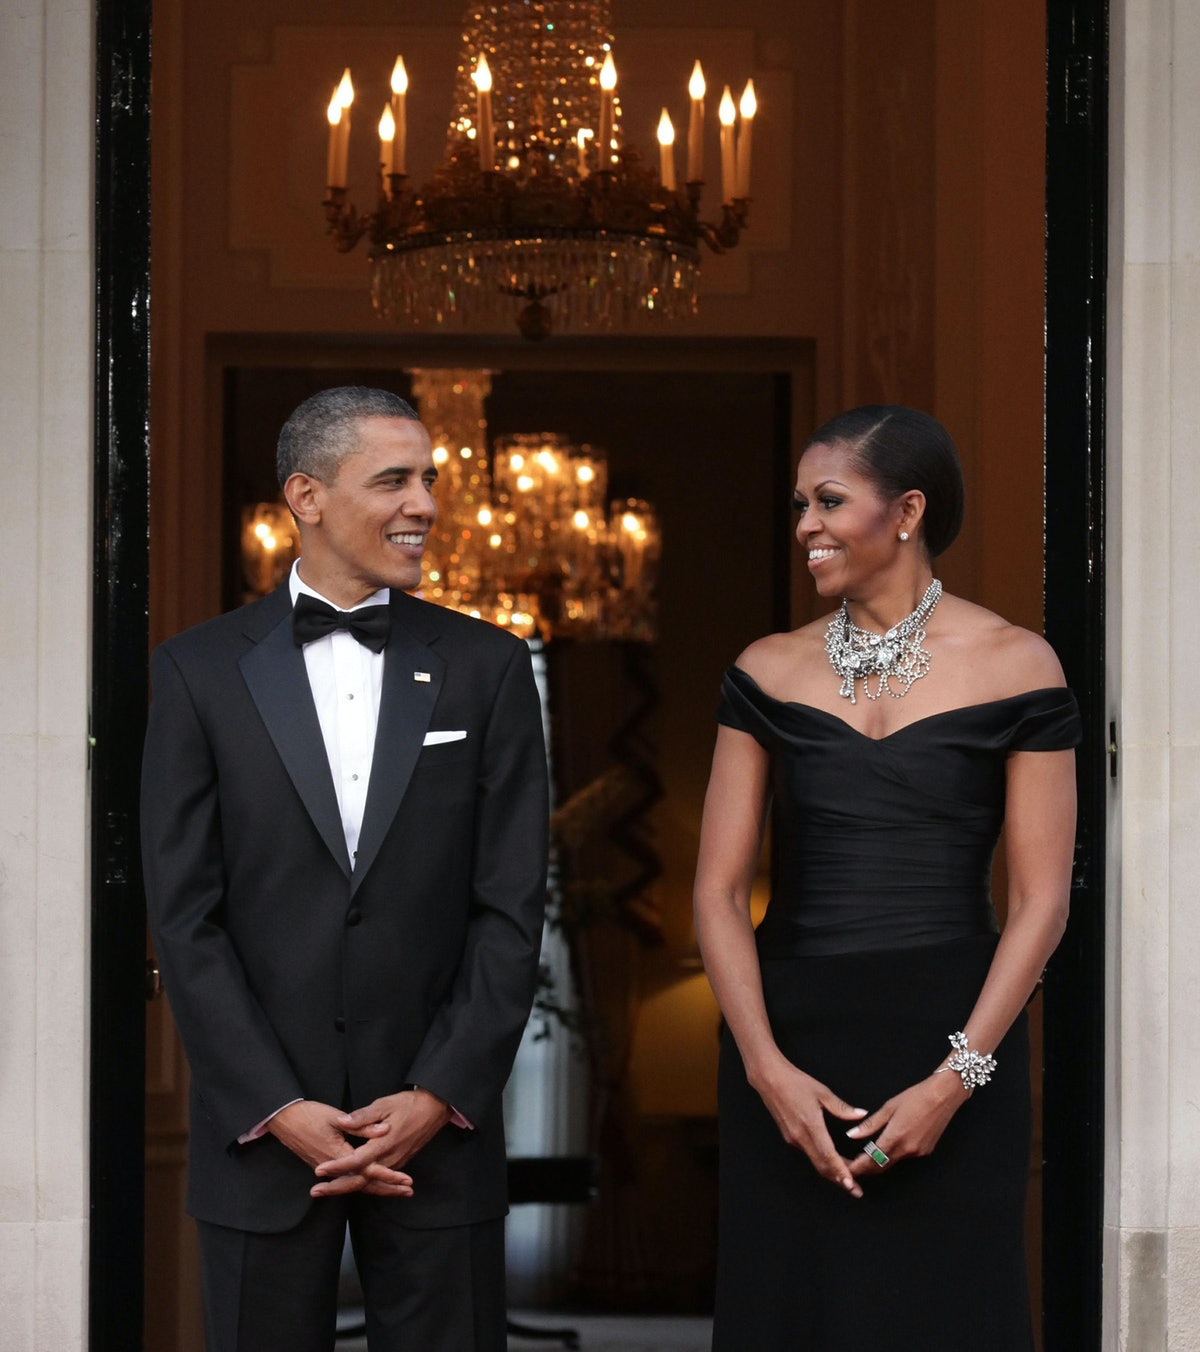 Barack Obama's Mother's Day 2020 Instagram Is A Love Letter To Michelle